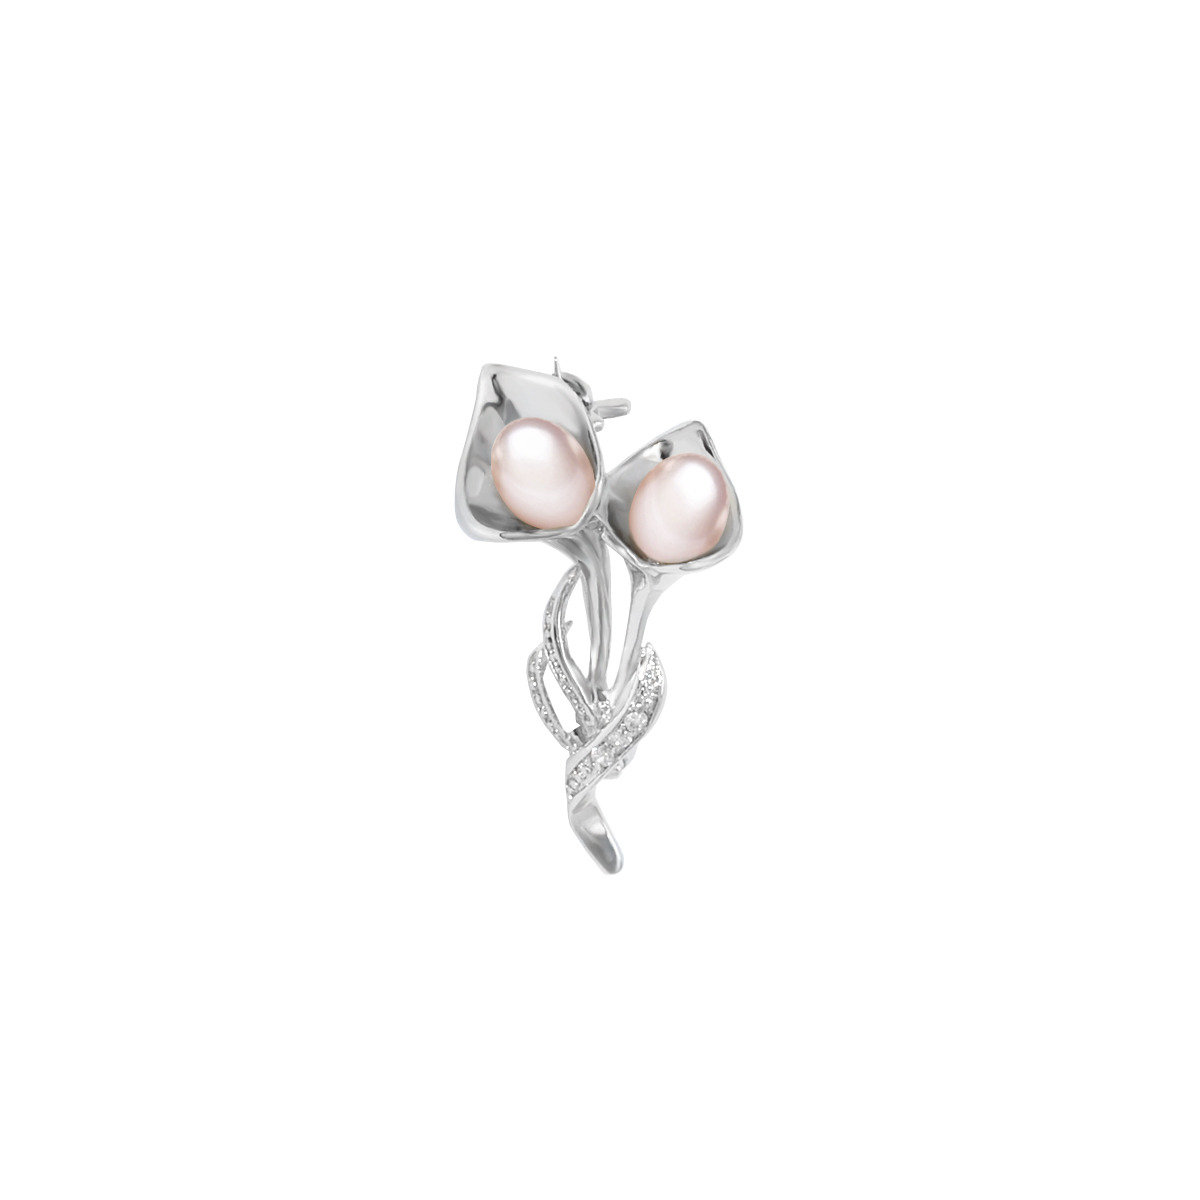 floria- 4-5mm fresh water pearl with 925 silver mounted with  cz brooch